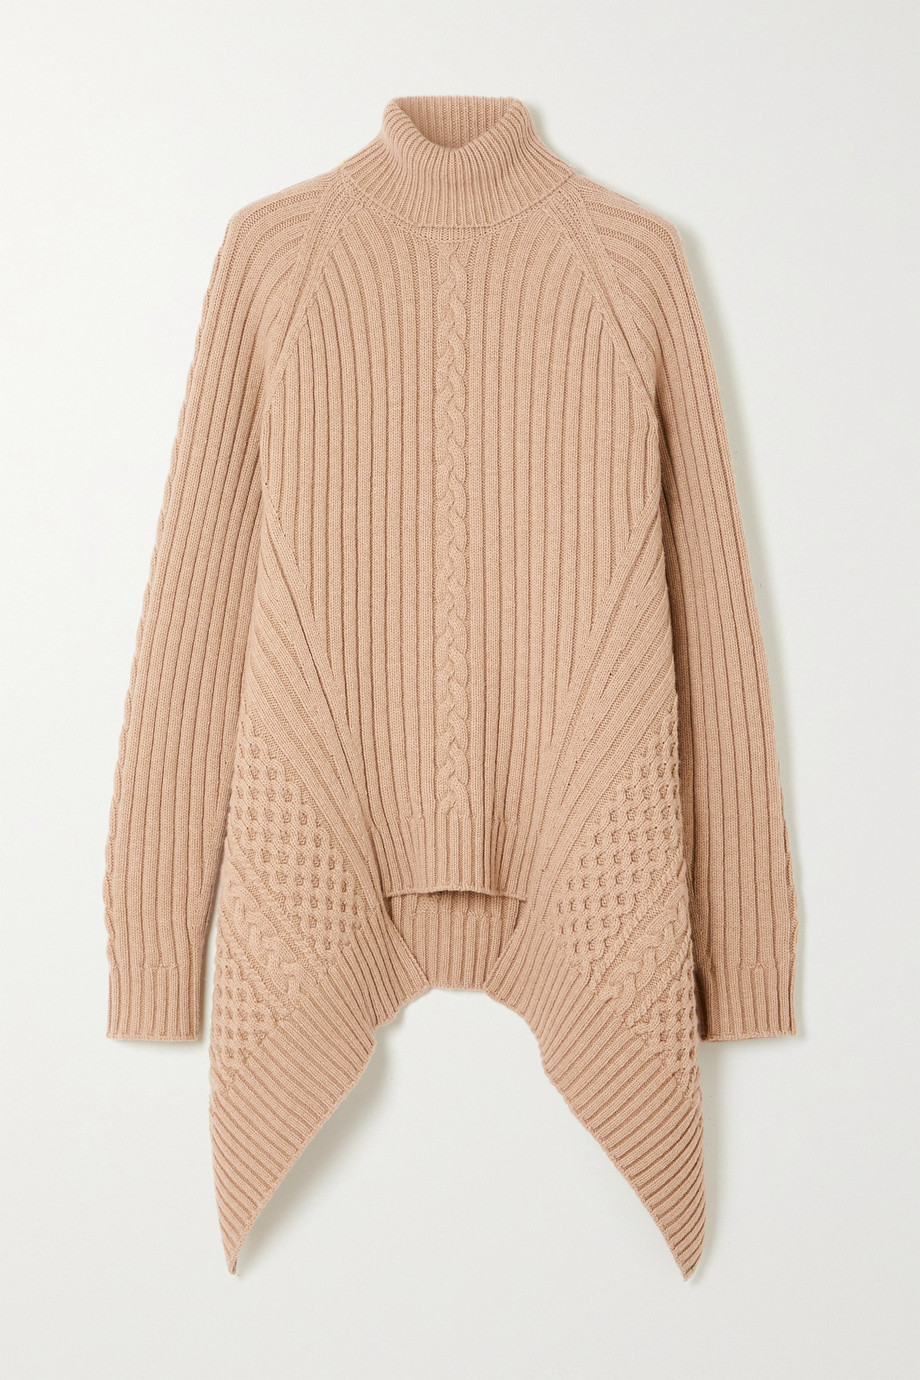 Alexander McQueen Asymmetric cable-knit wool and cashmere-blend turtleneck sweater